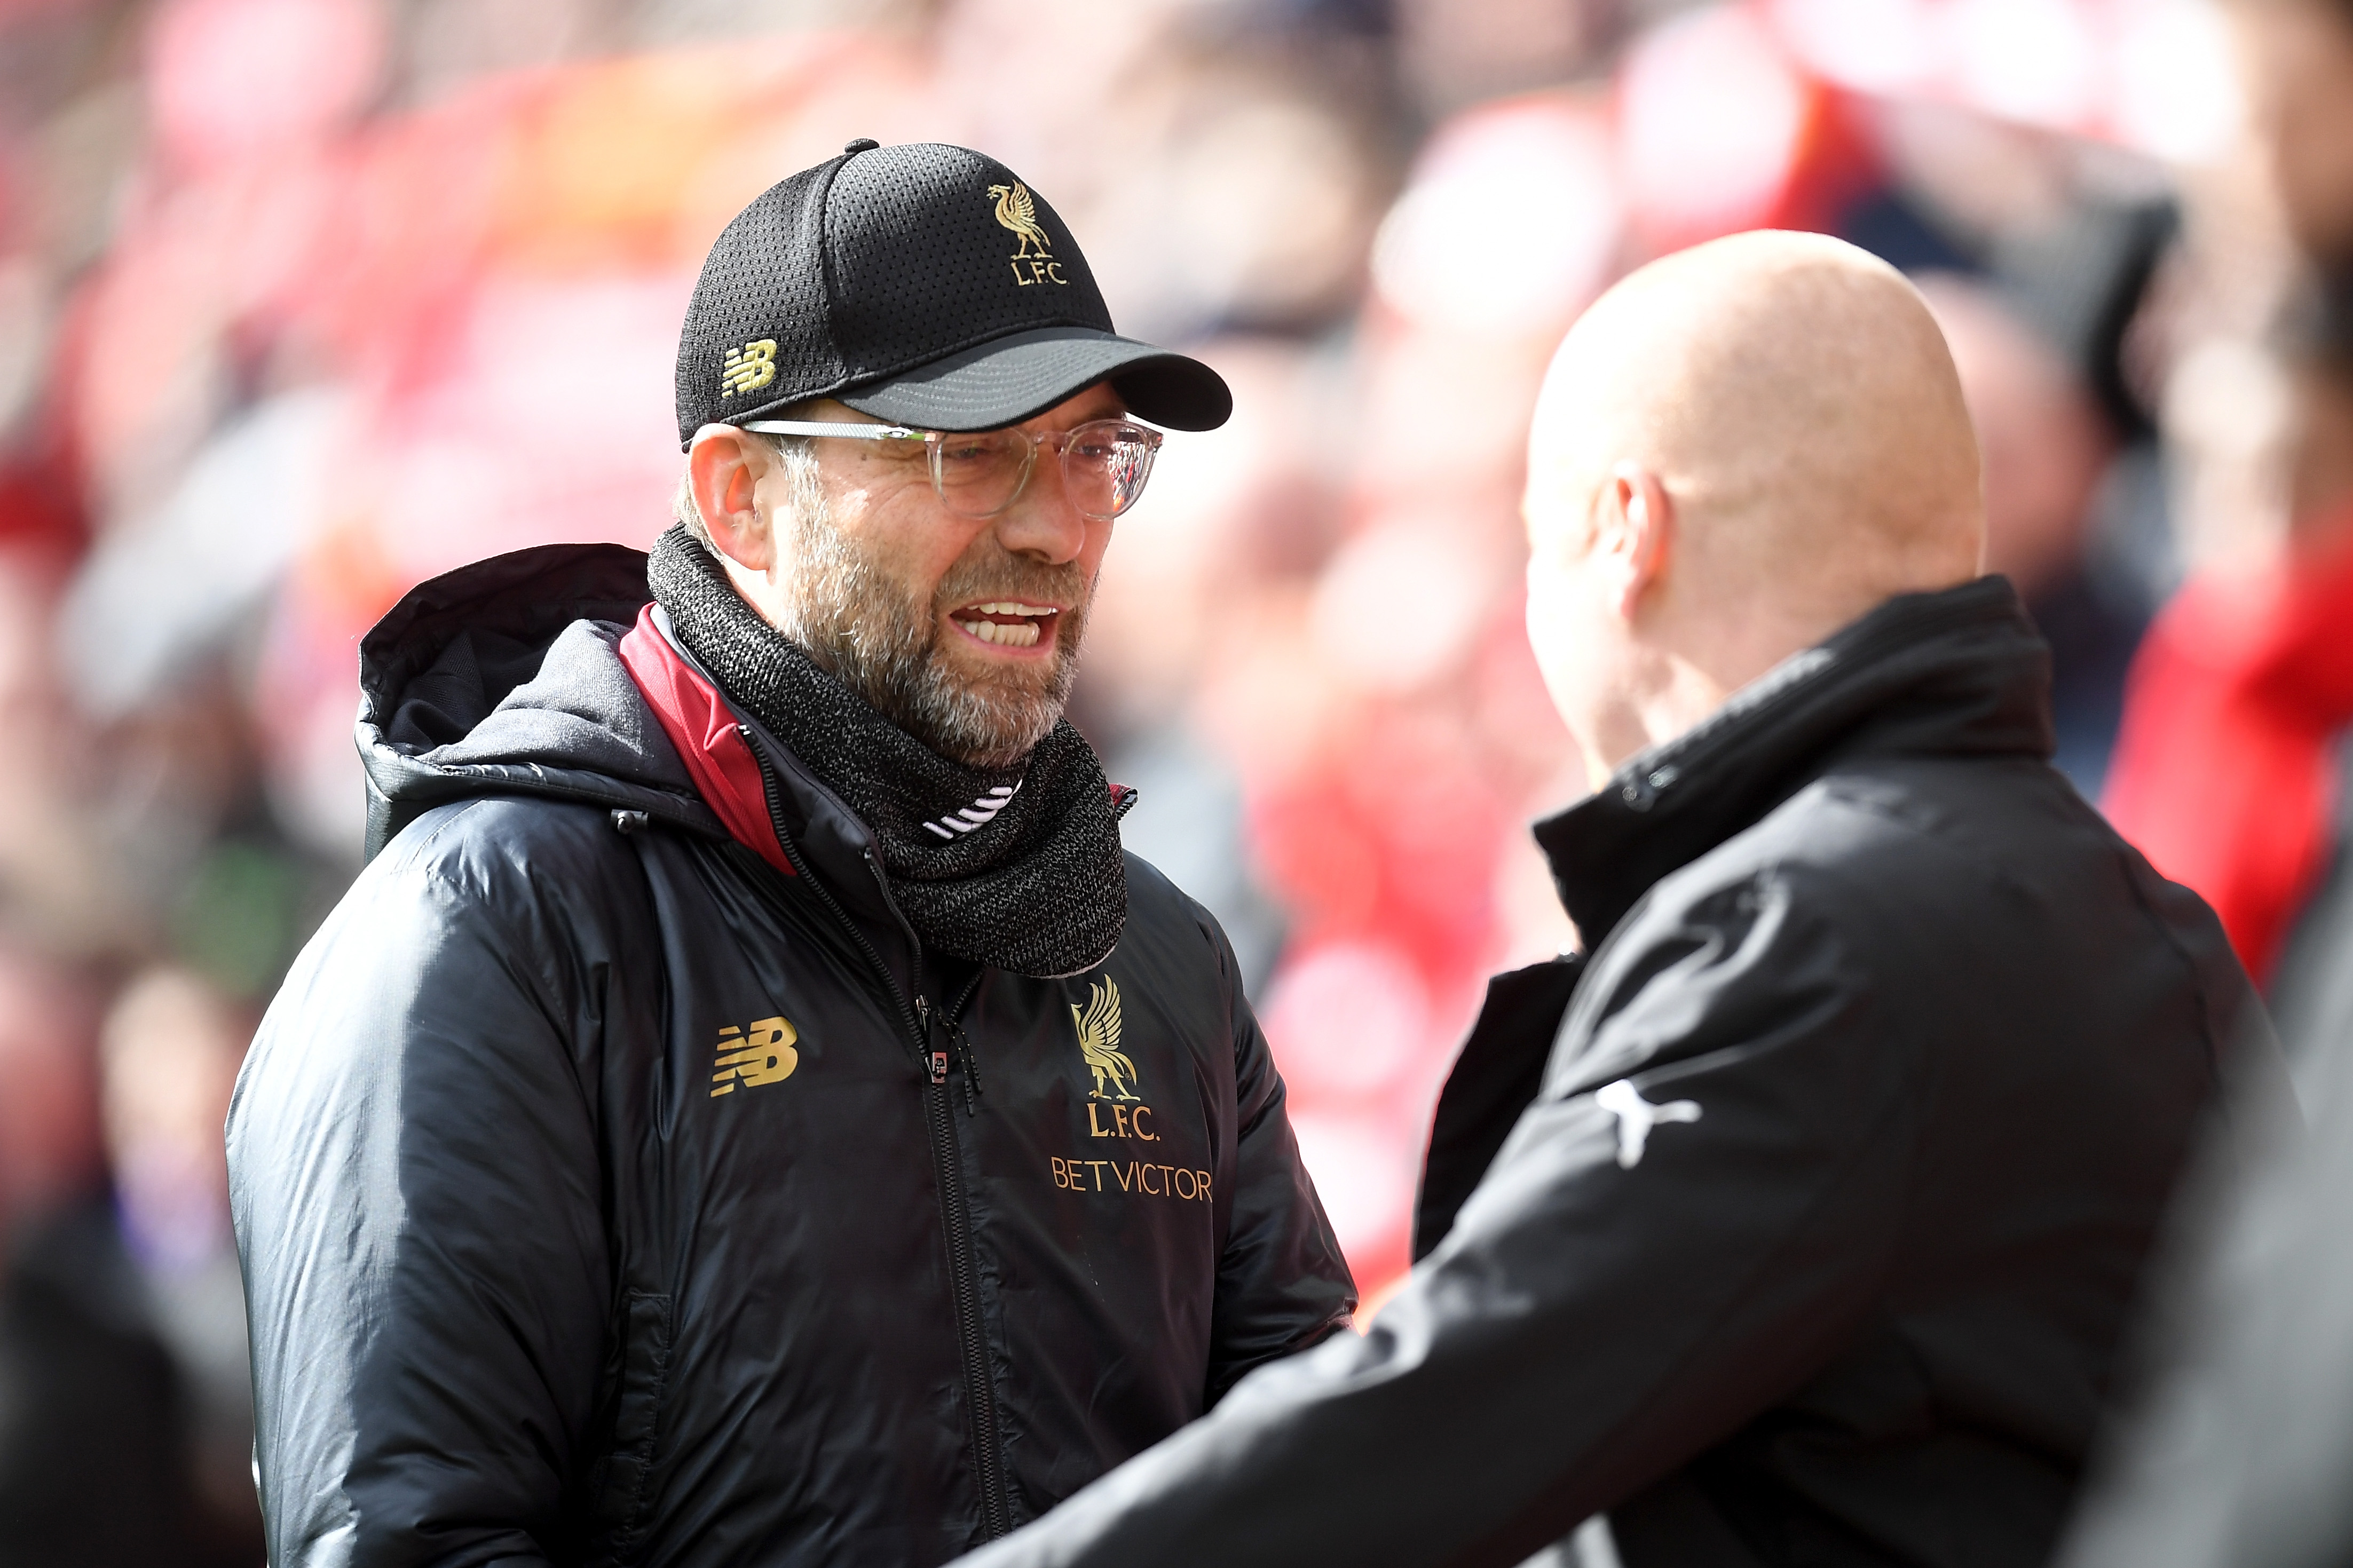 Jurgen Klopp, manager of Liverpool shakes hands with Sean Dyche, manager of Burnley